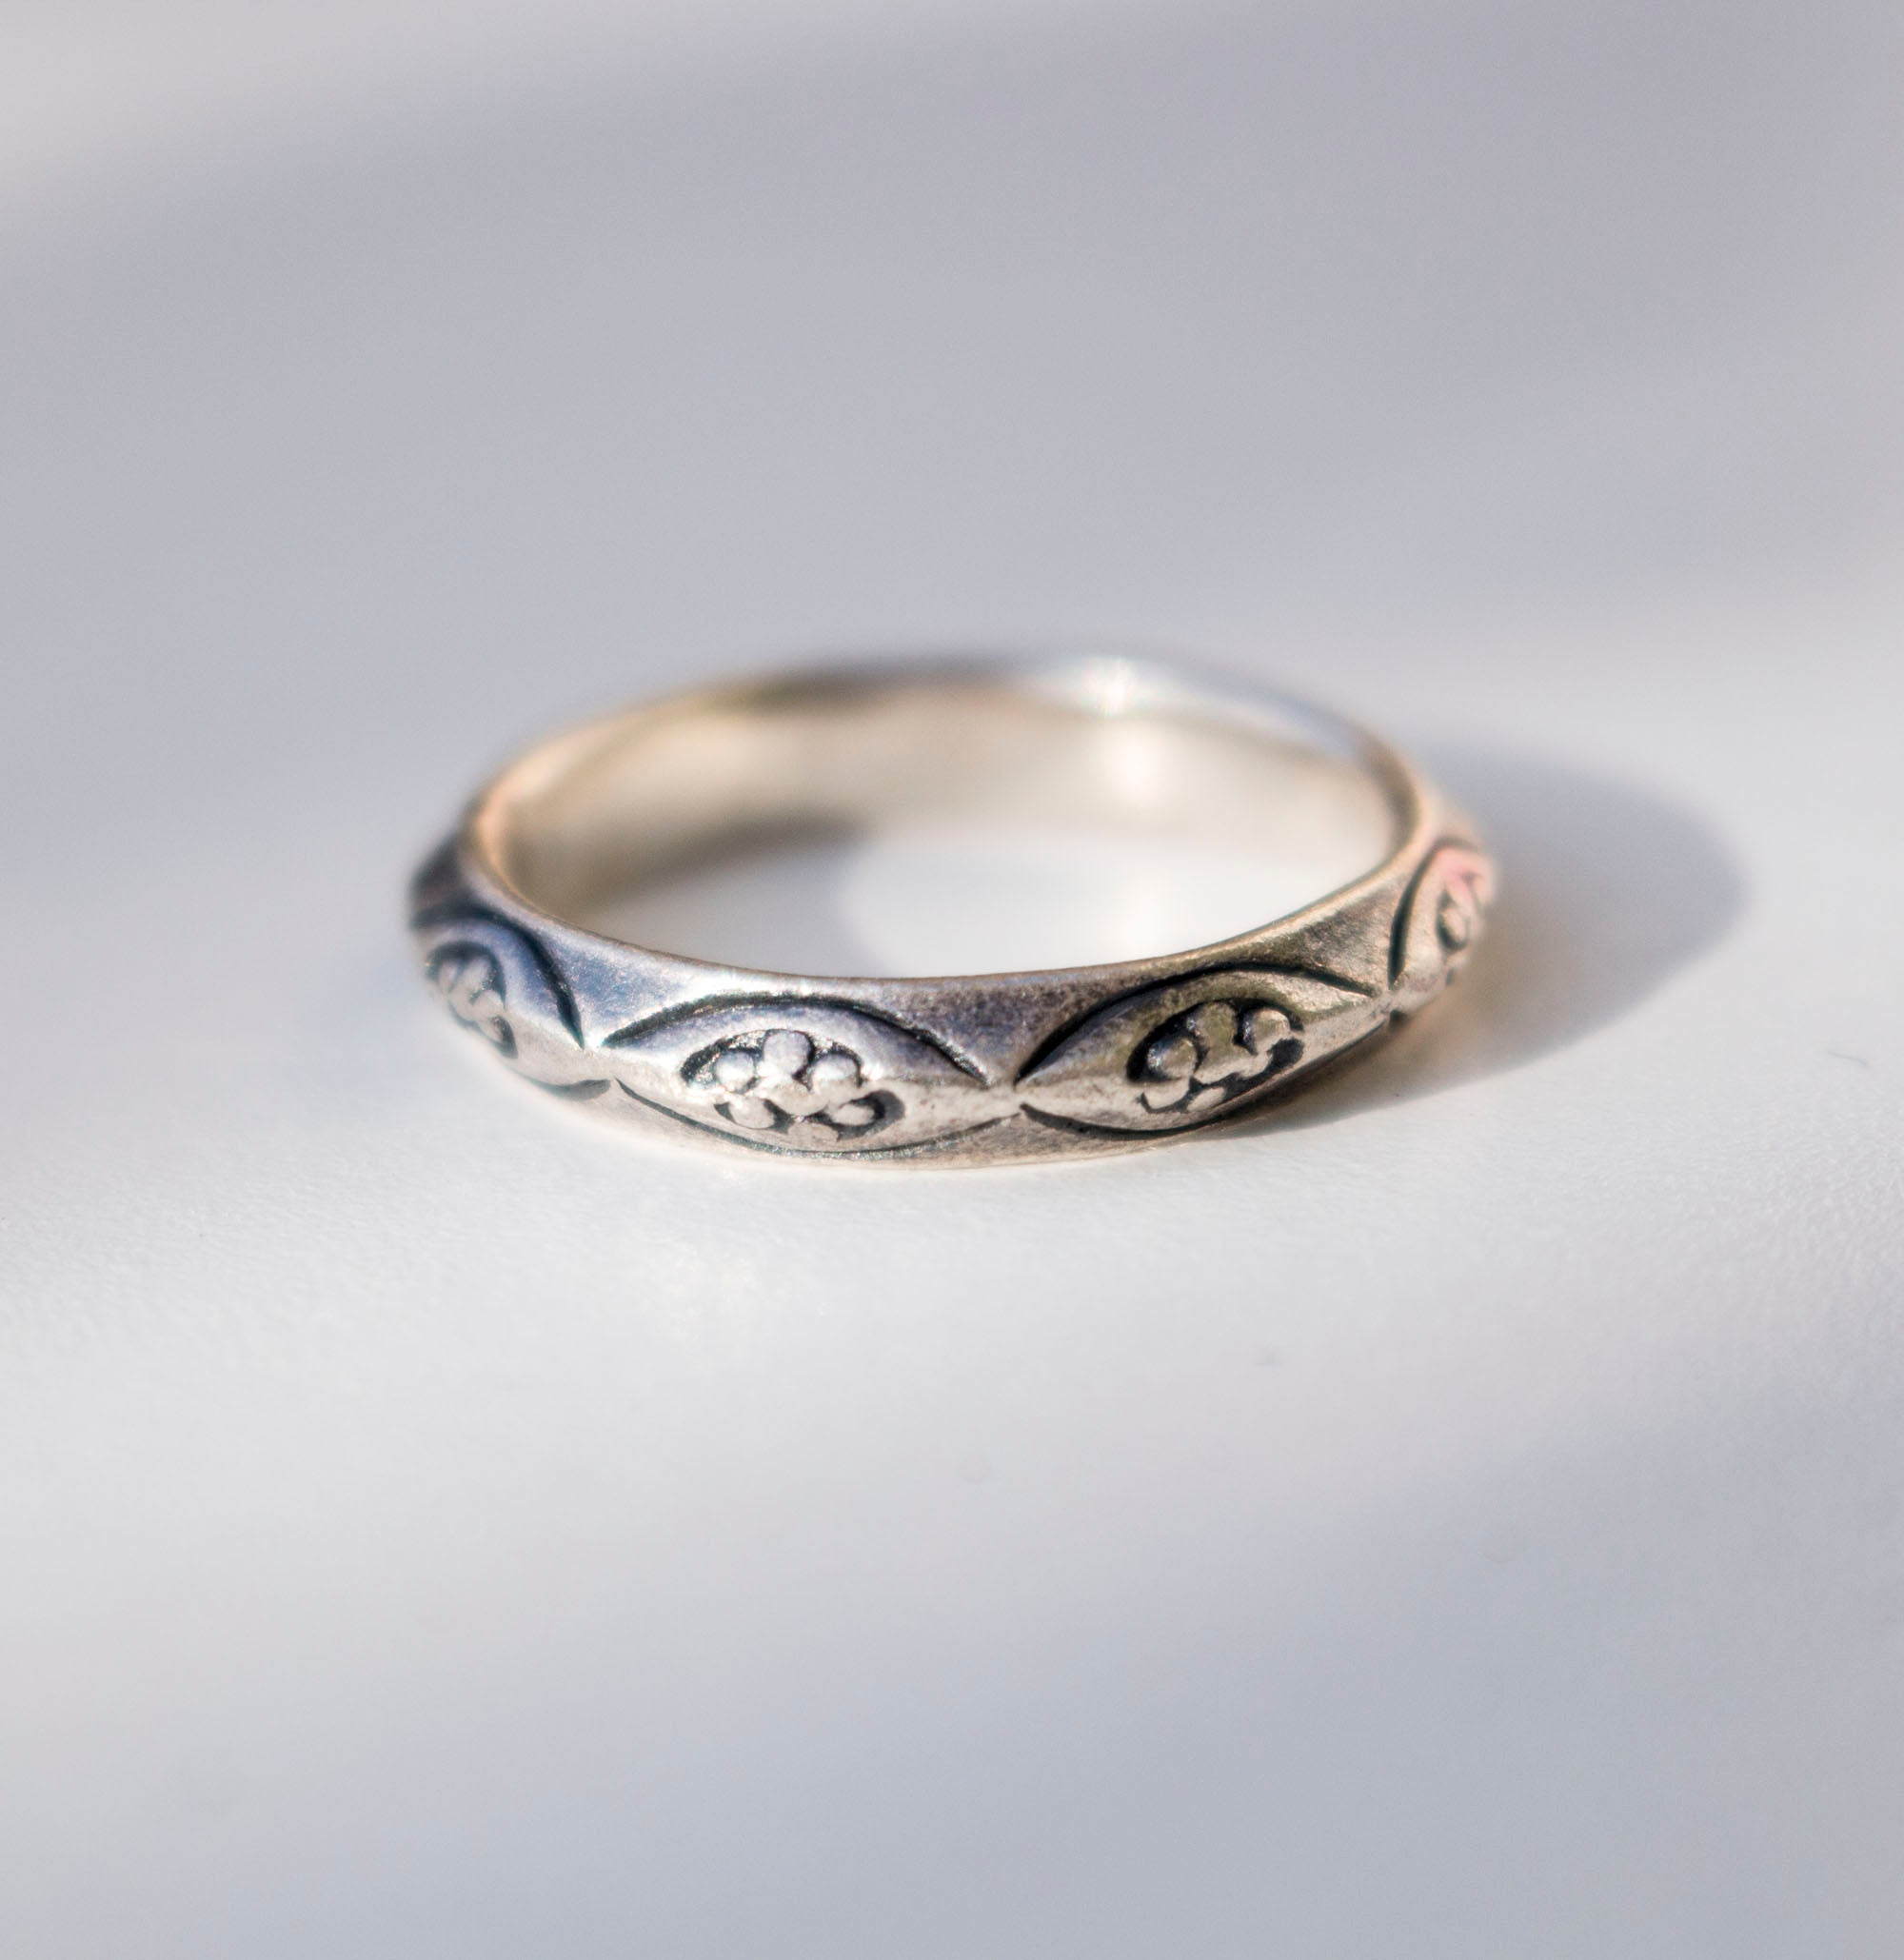 Stamped Sterling Silver ring